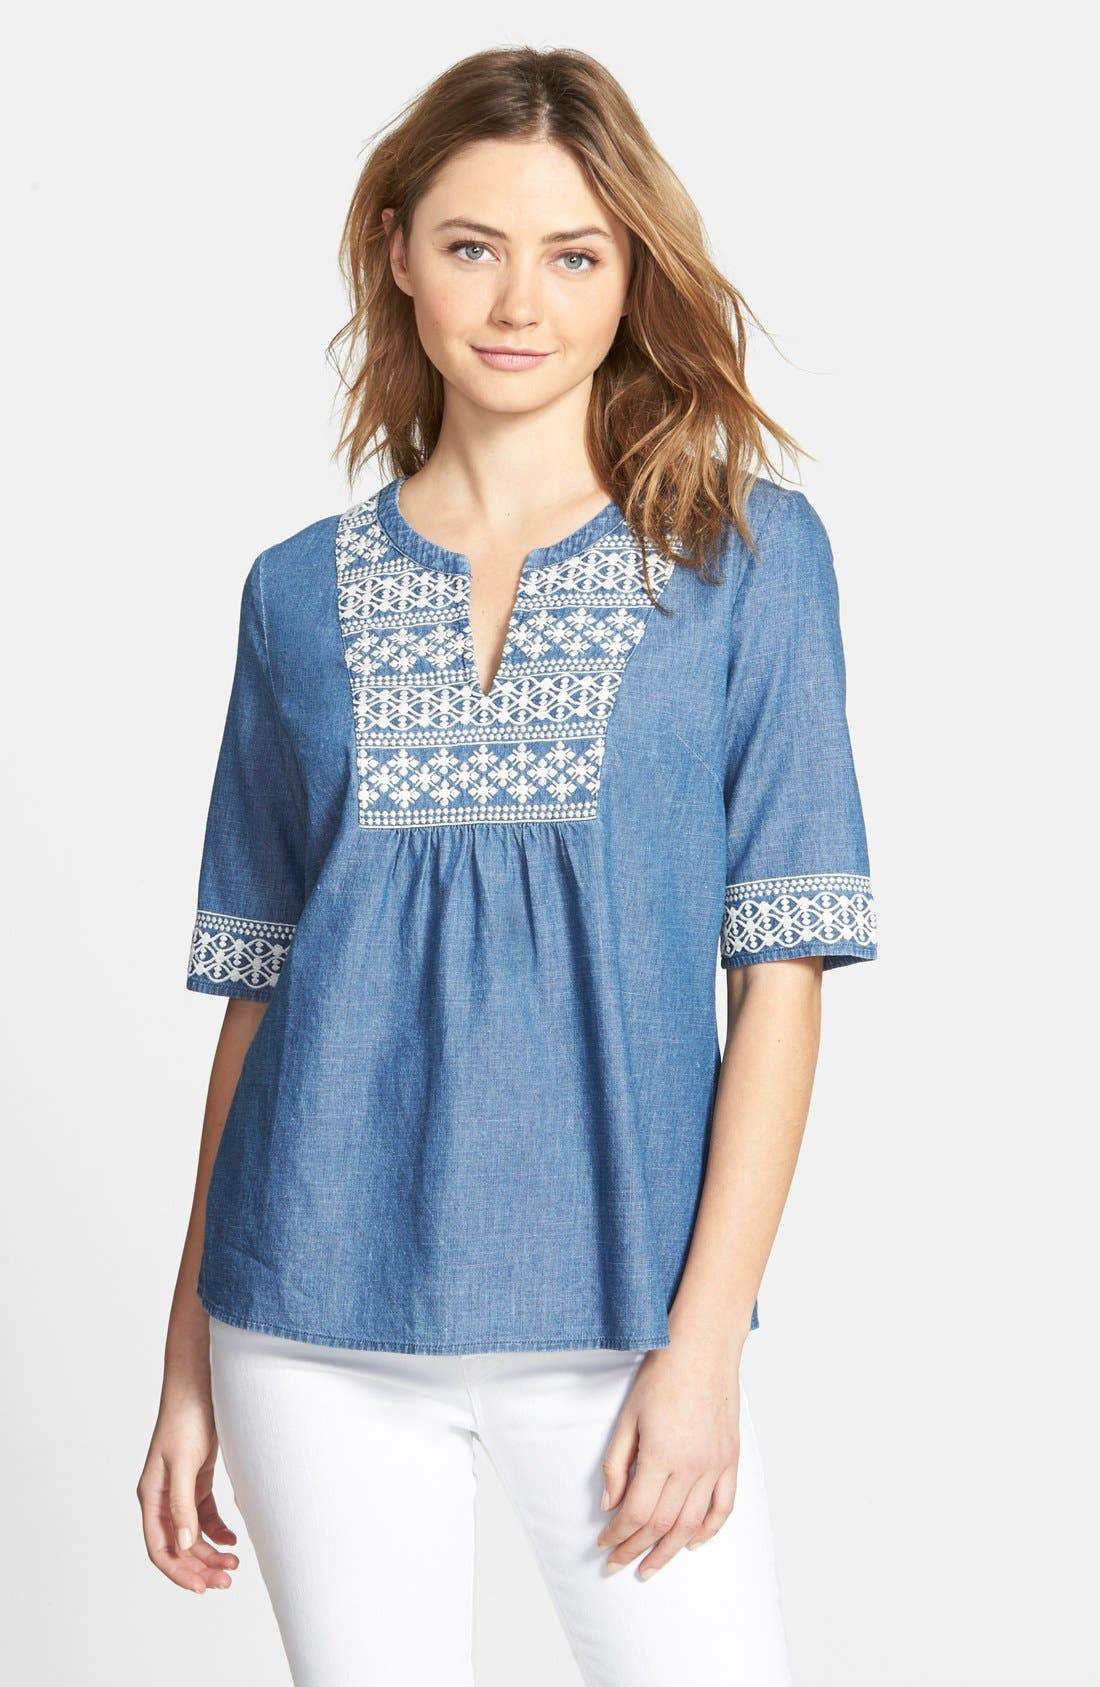 Alternate Image 1 Selected - Vineyard Vines Embroidered Chambray Top